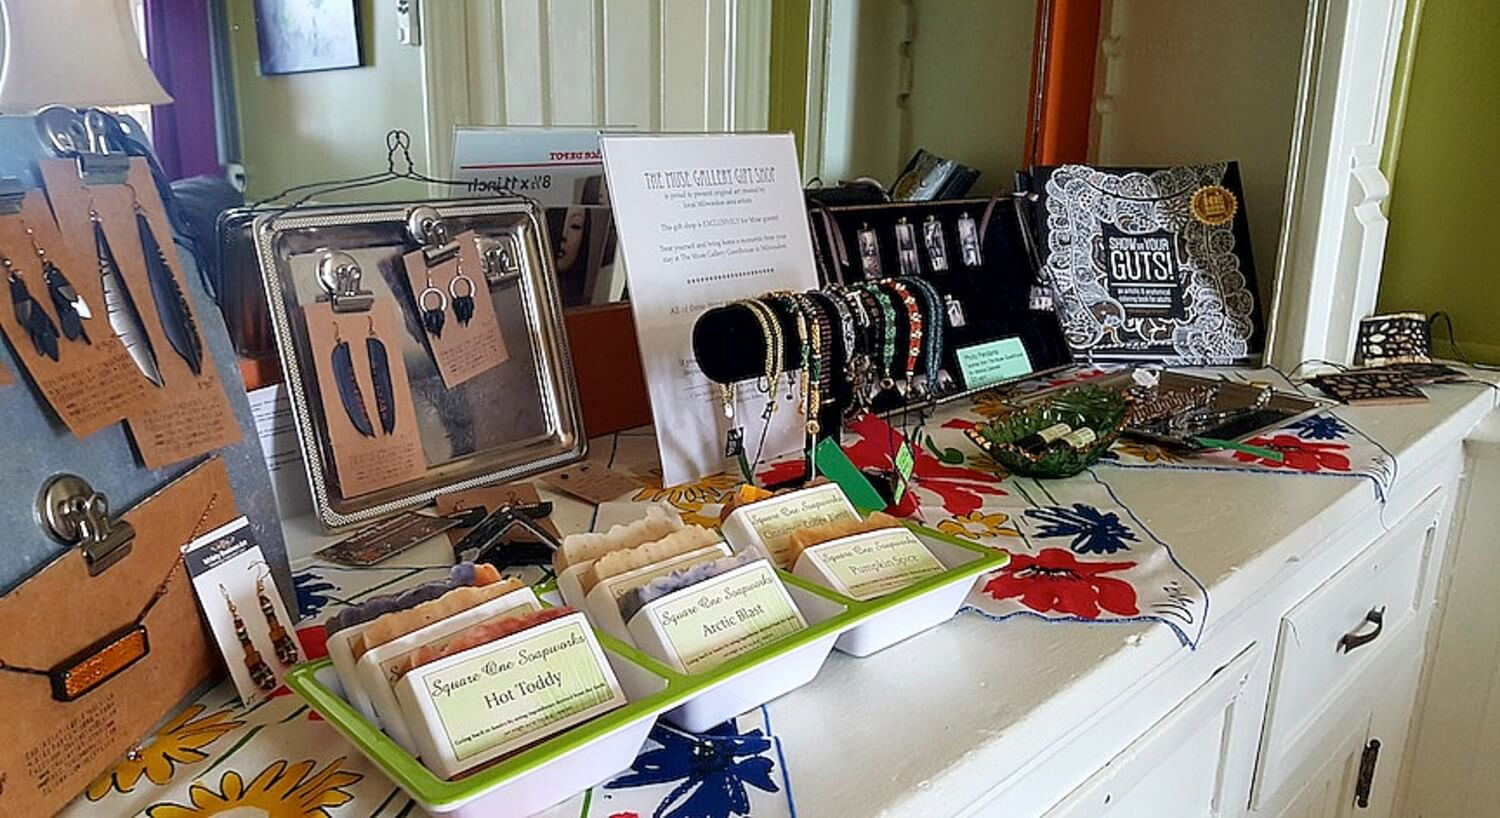 Table of wares for sale including soaps, jewelry and books.